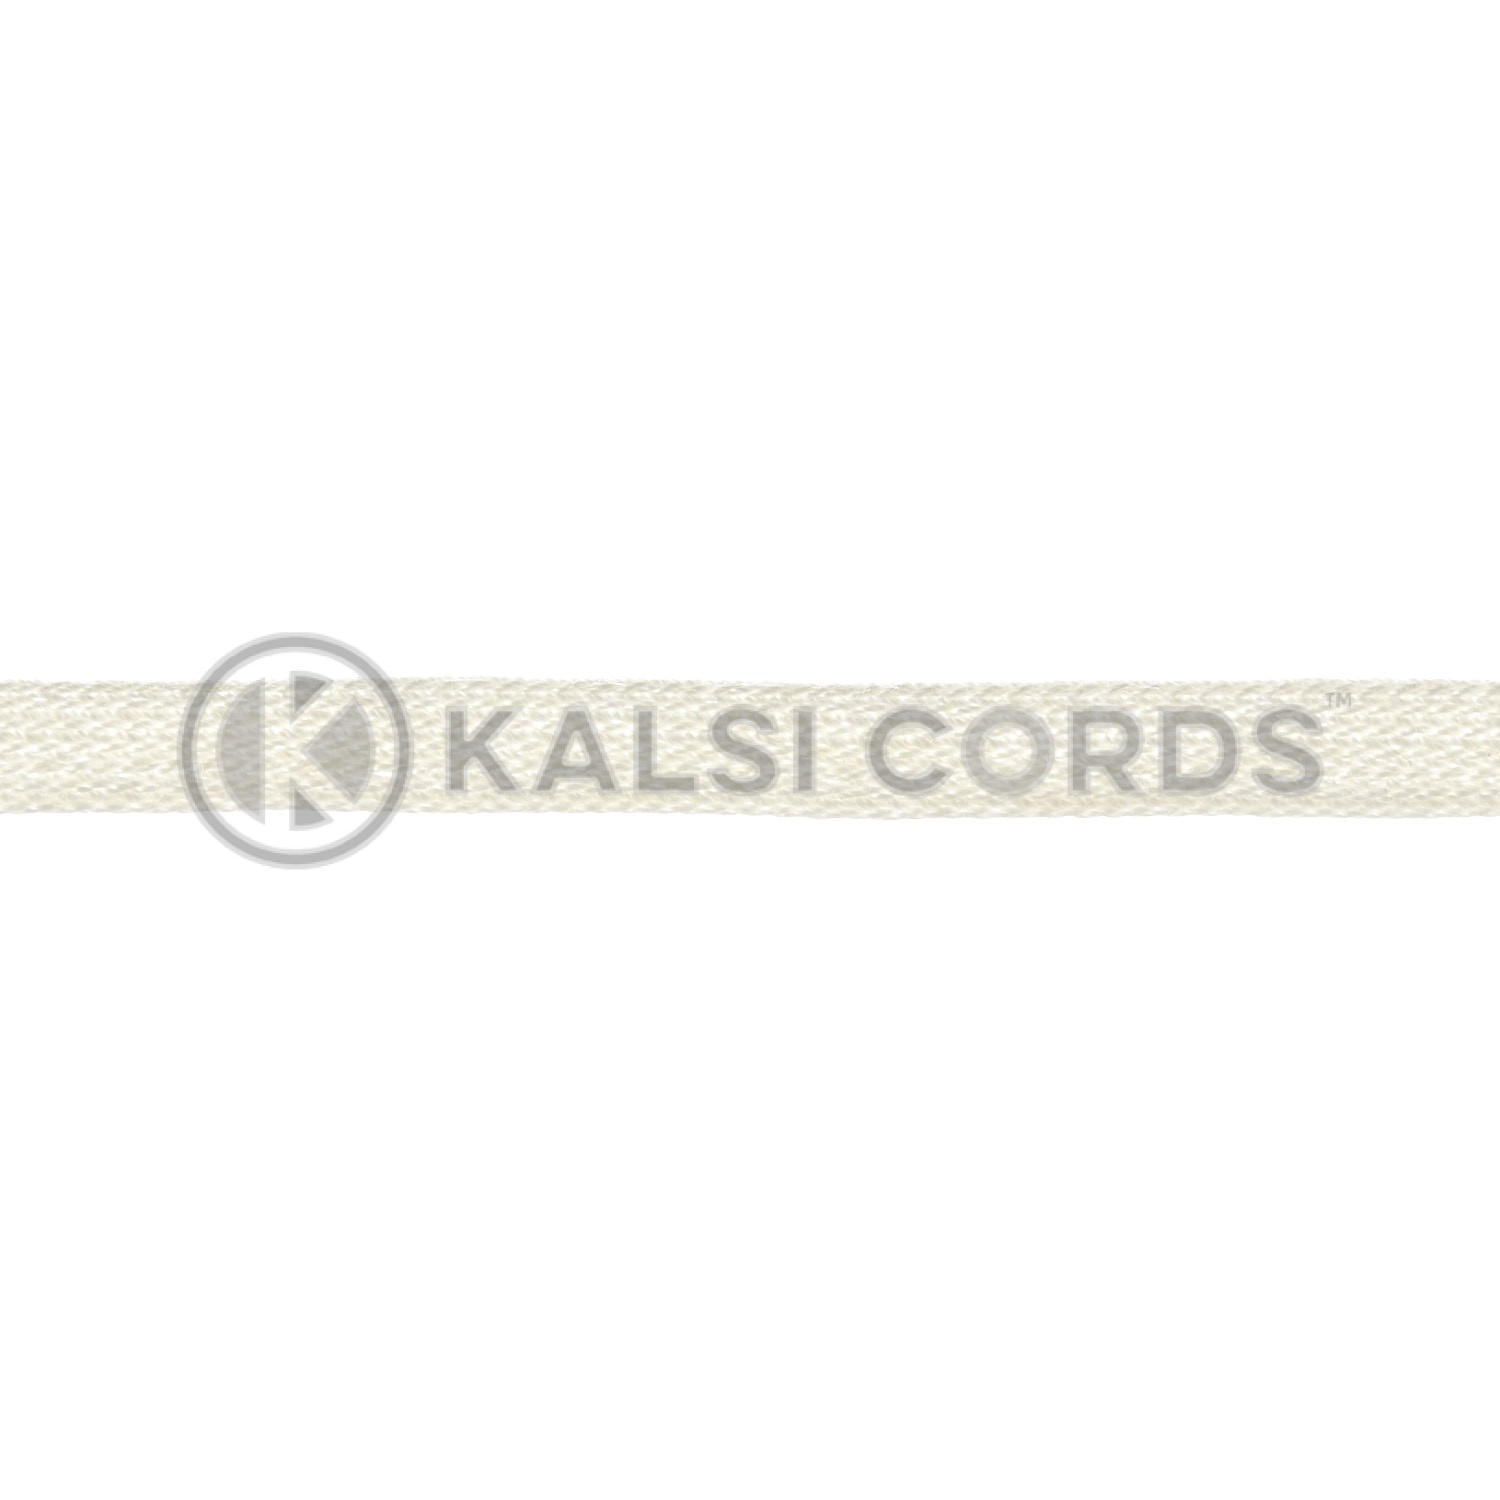 6mm Flat Cotton Braid Tape Cord Binding String Strapping TC31 Kalsi Cords